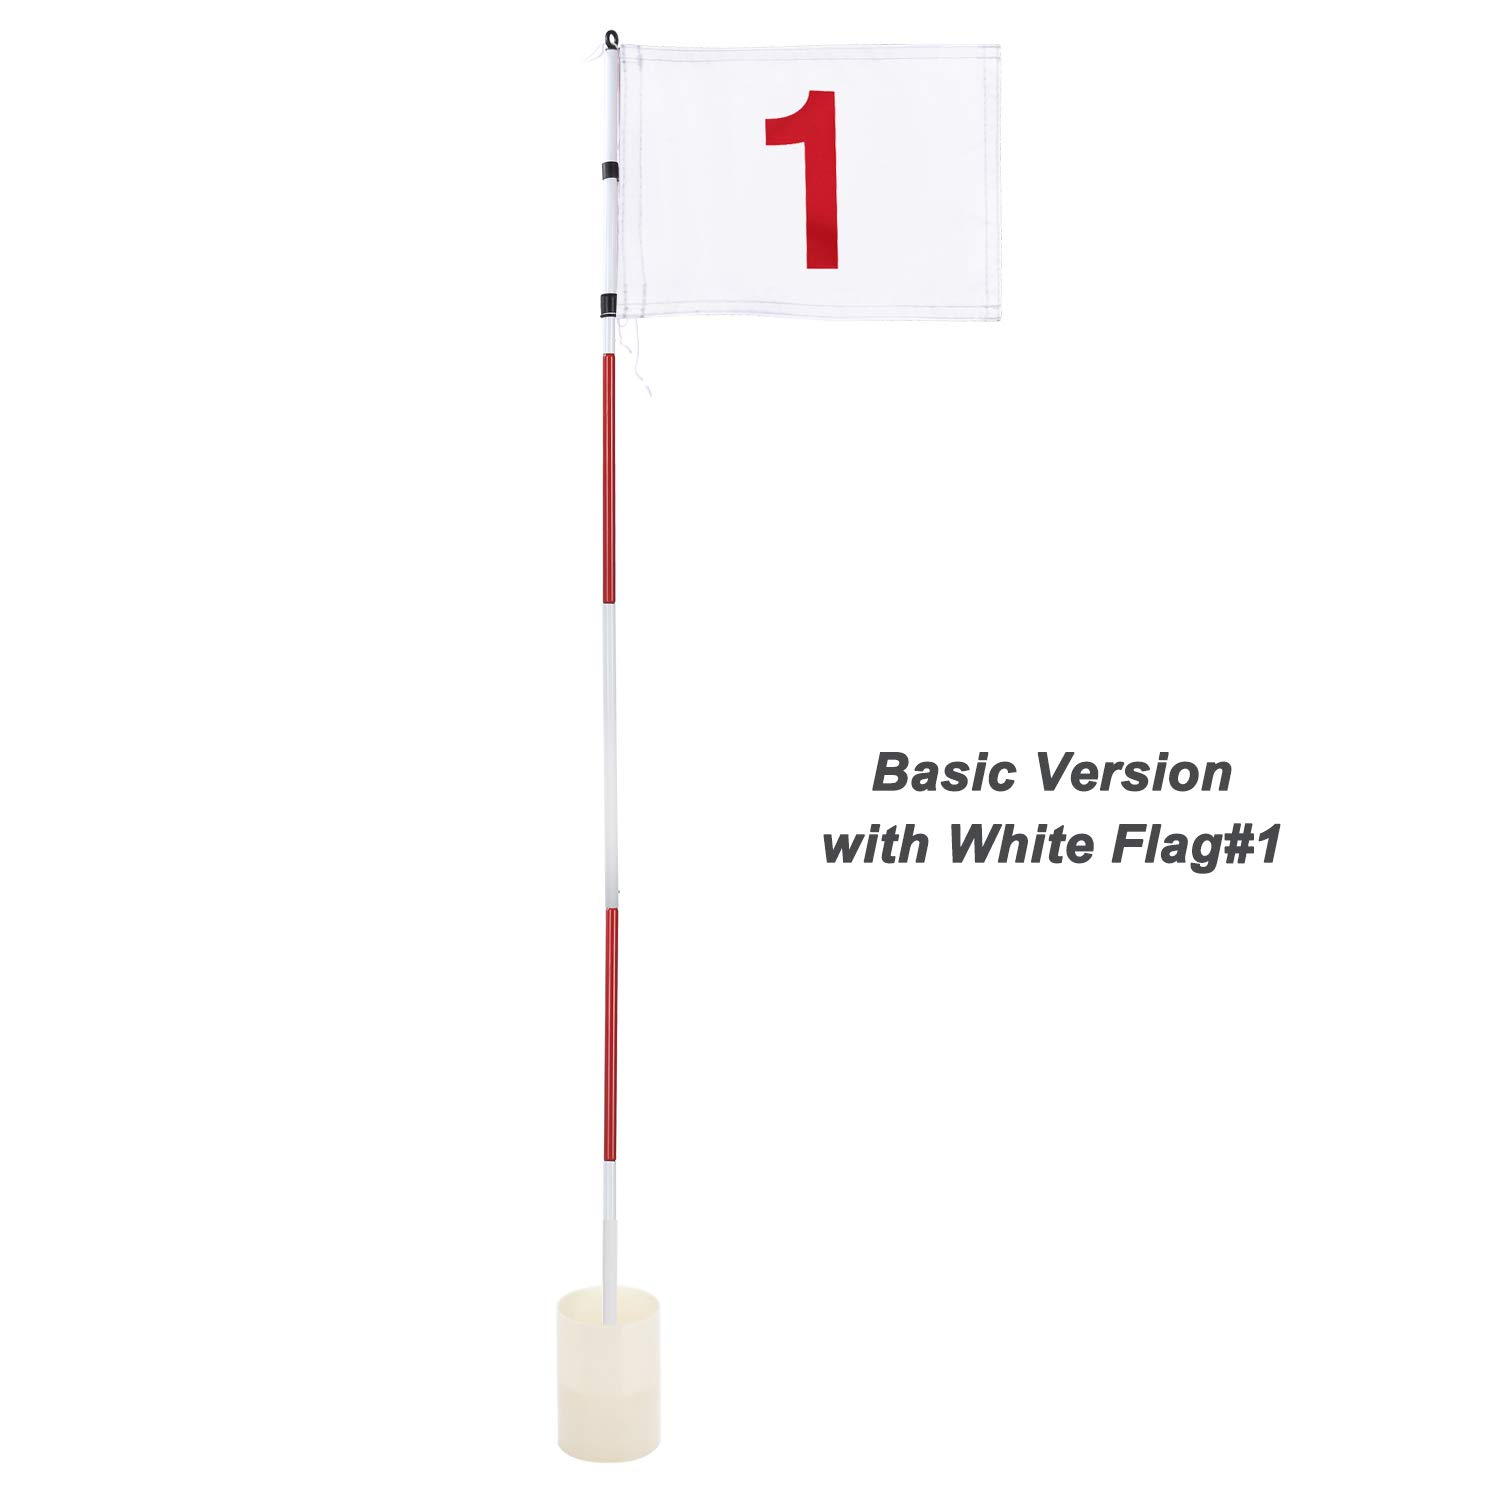 KINGTOP Professional Golf Pin Flag, Practice Putting Green Flagstick Hole Cup Set, Indoor/Outdoor, Portable 5-Section Design, Solid Red Flag Numbered #1, Both 71-inch (Basic)